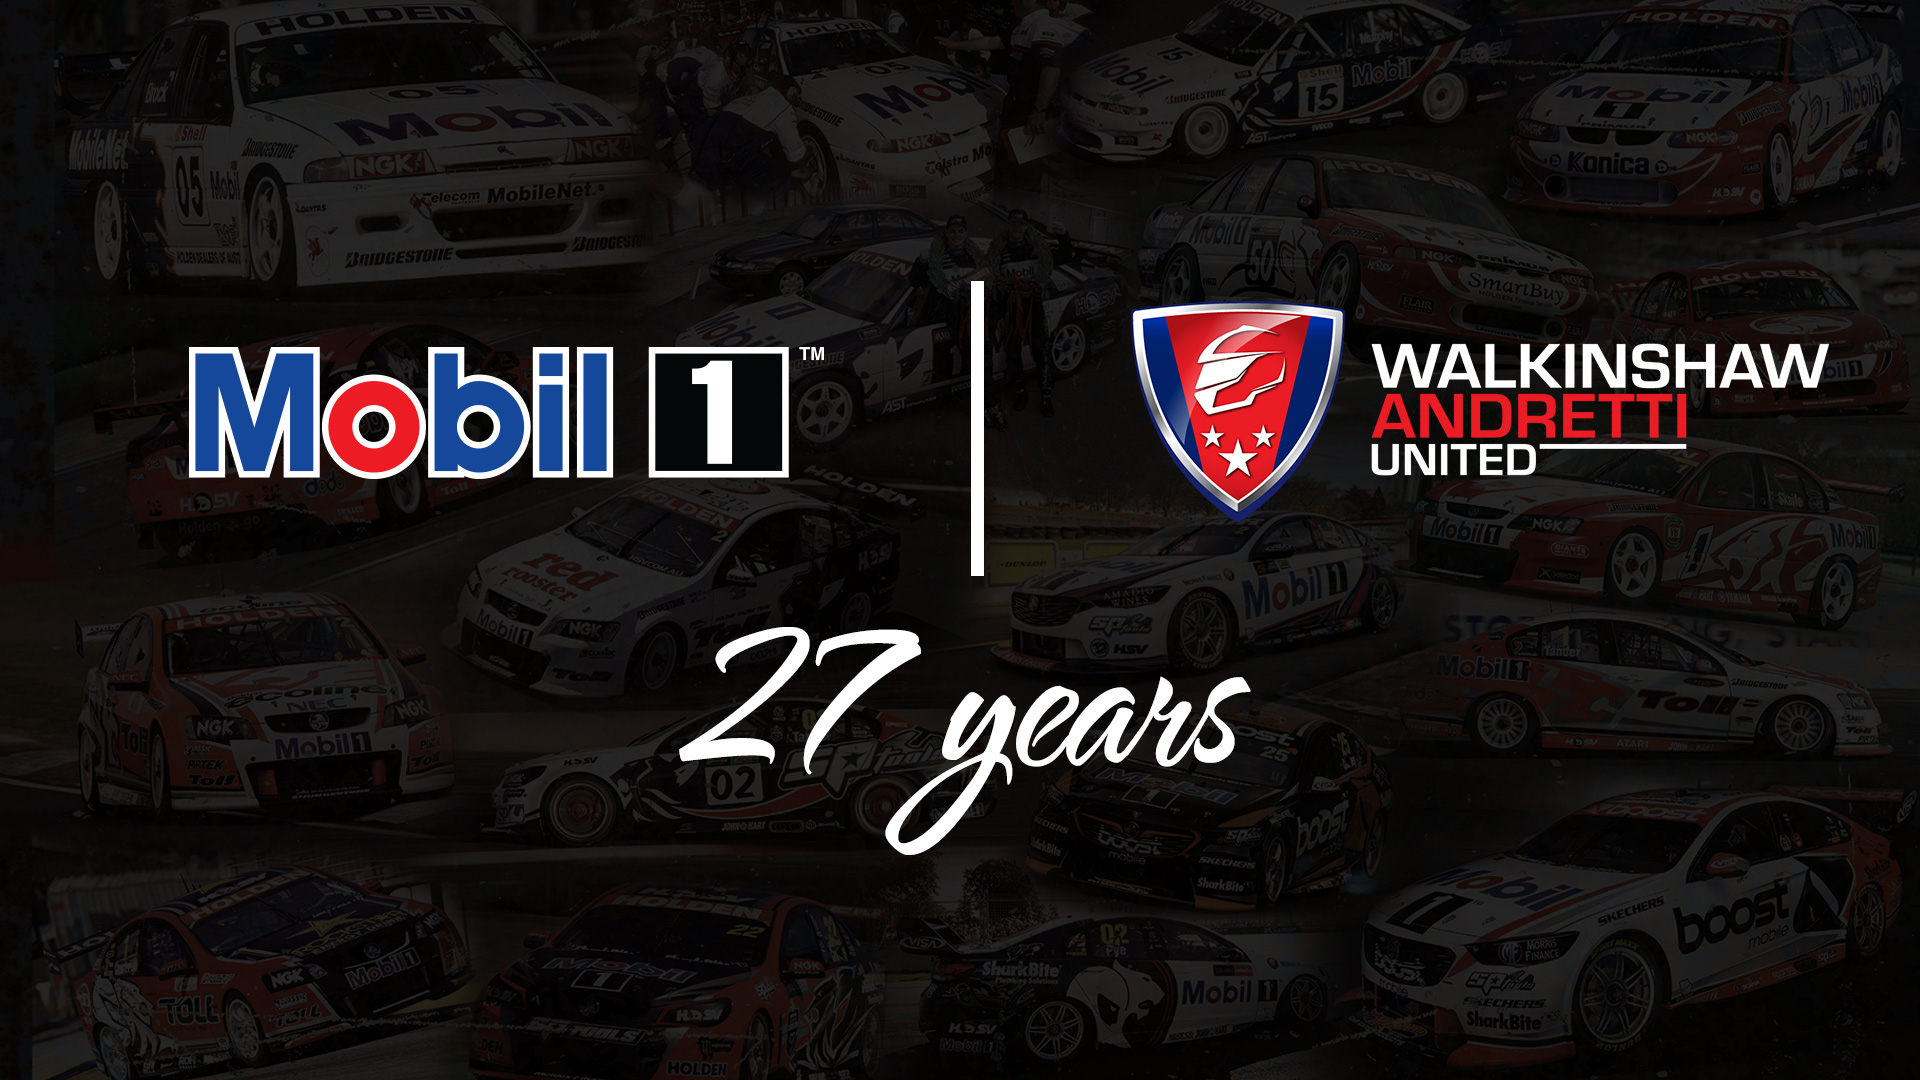 Mobil 1 to be Co-Naming Rights Partner on both WAU entries for 2020 and beyond.